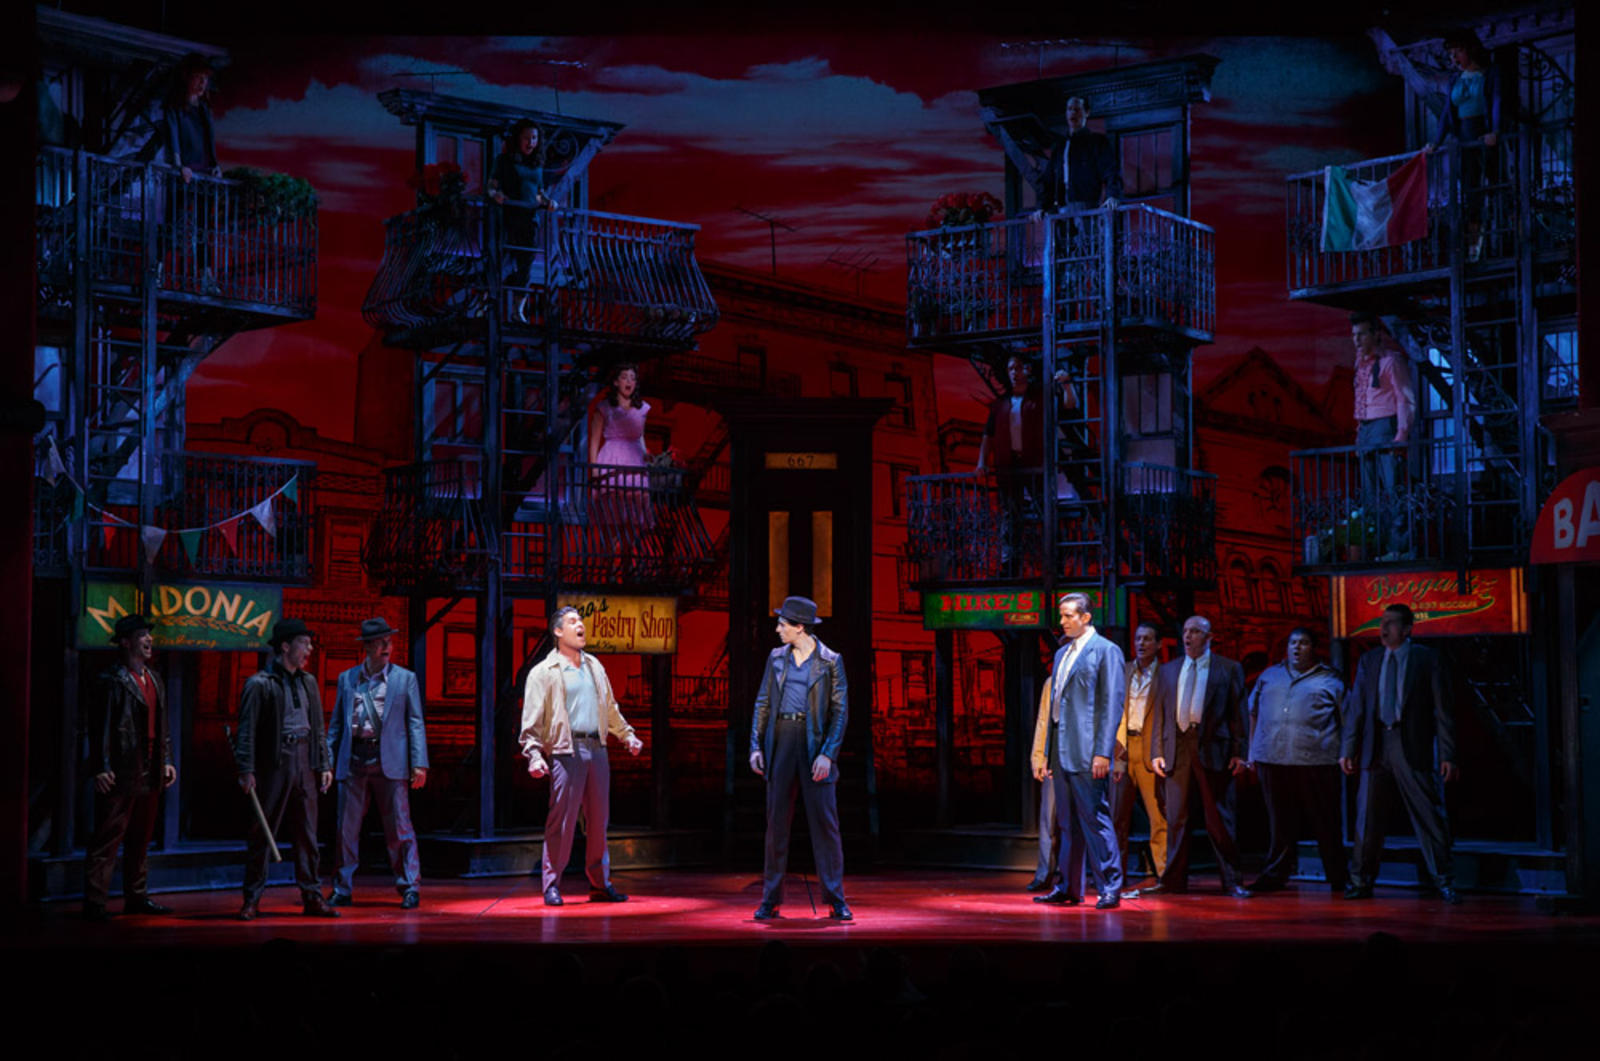 """A Bronx Tale"" by Chazz Palminteri, Alan Menken and Glenn Slater at Longacre Theater"